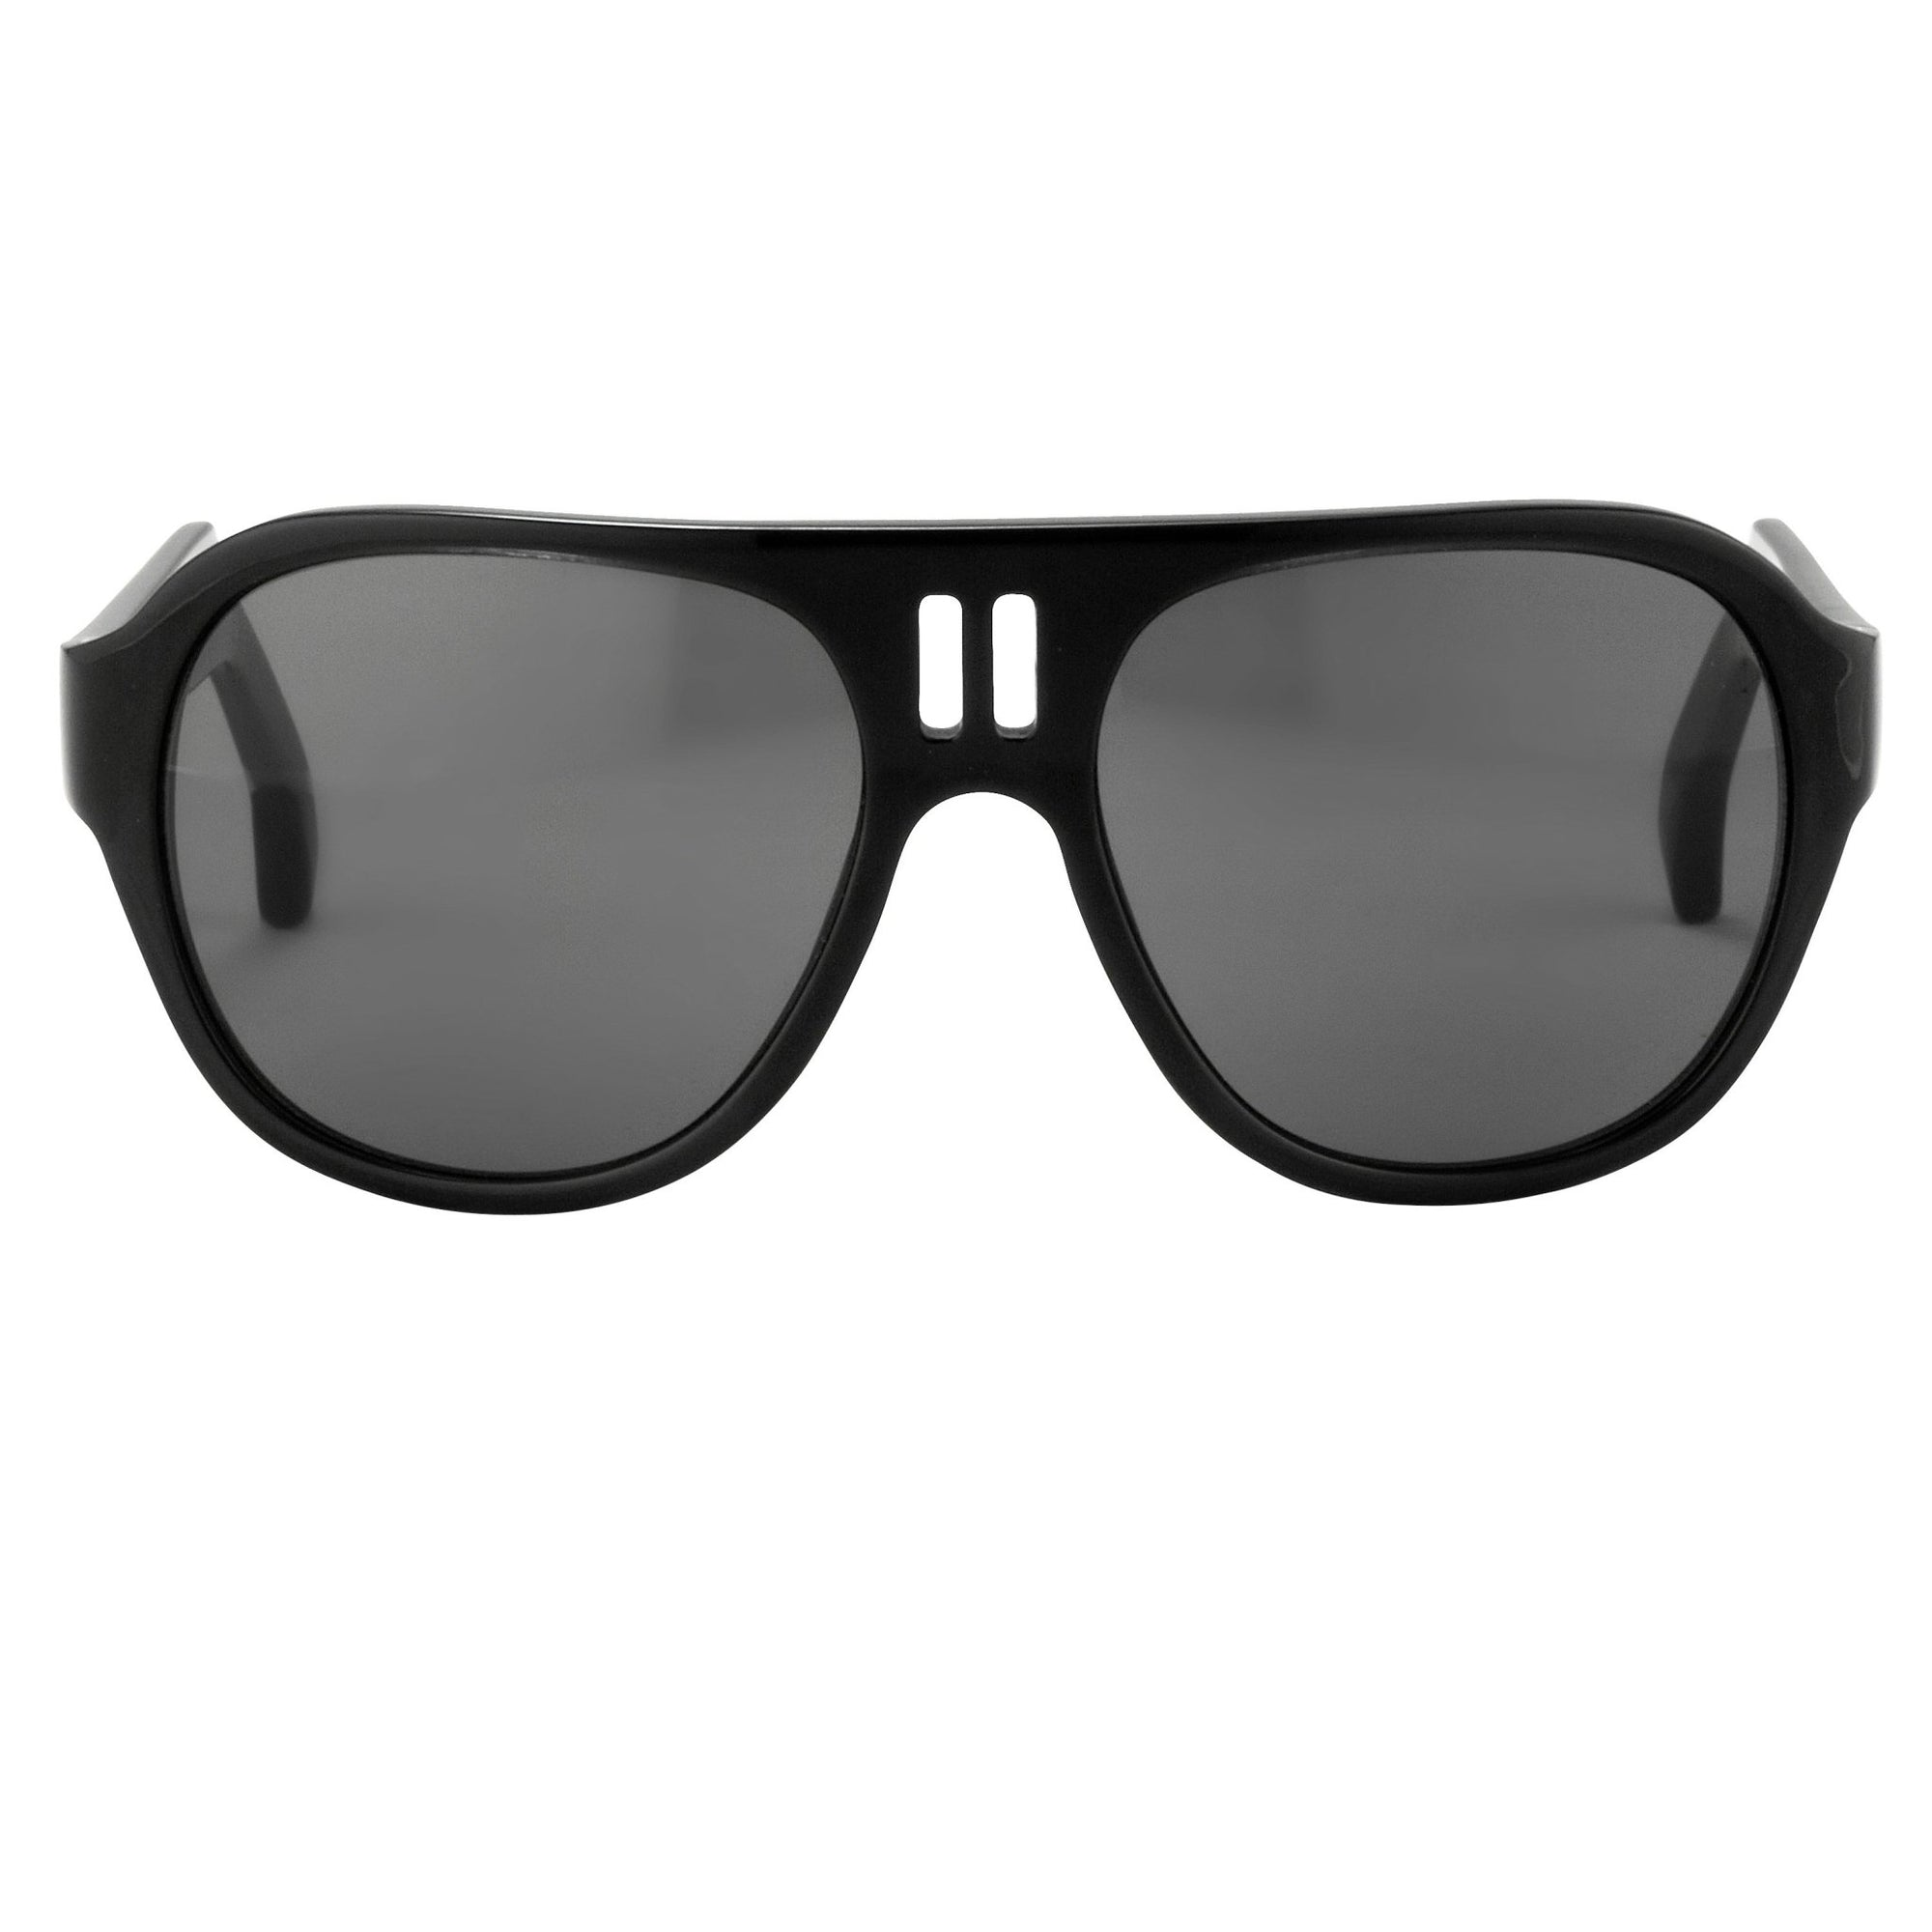 Boris Bidjan Saberi Sunglasses Black With Grey Category 3 Lenses BBS4C2SUN - Watches & Crystals